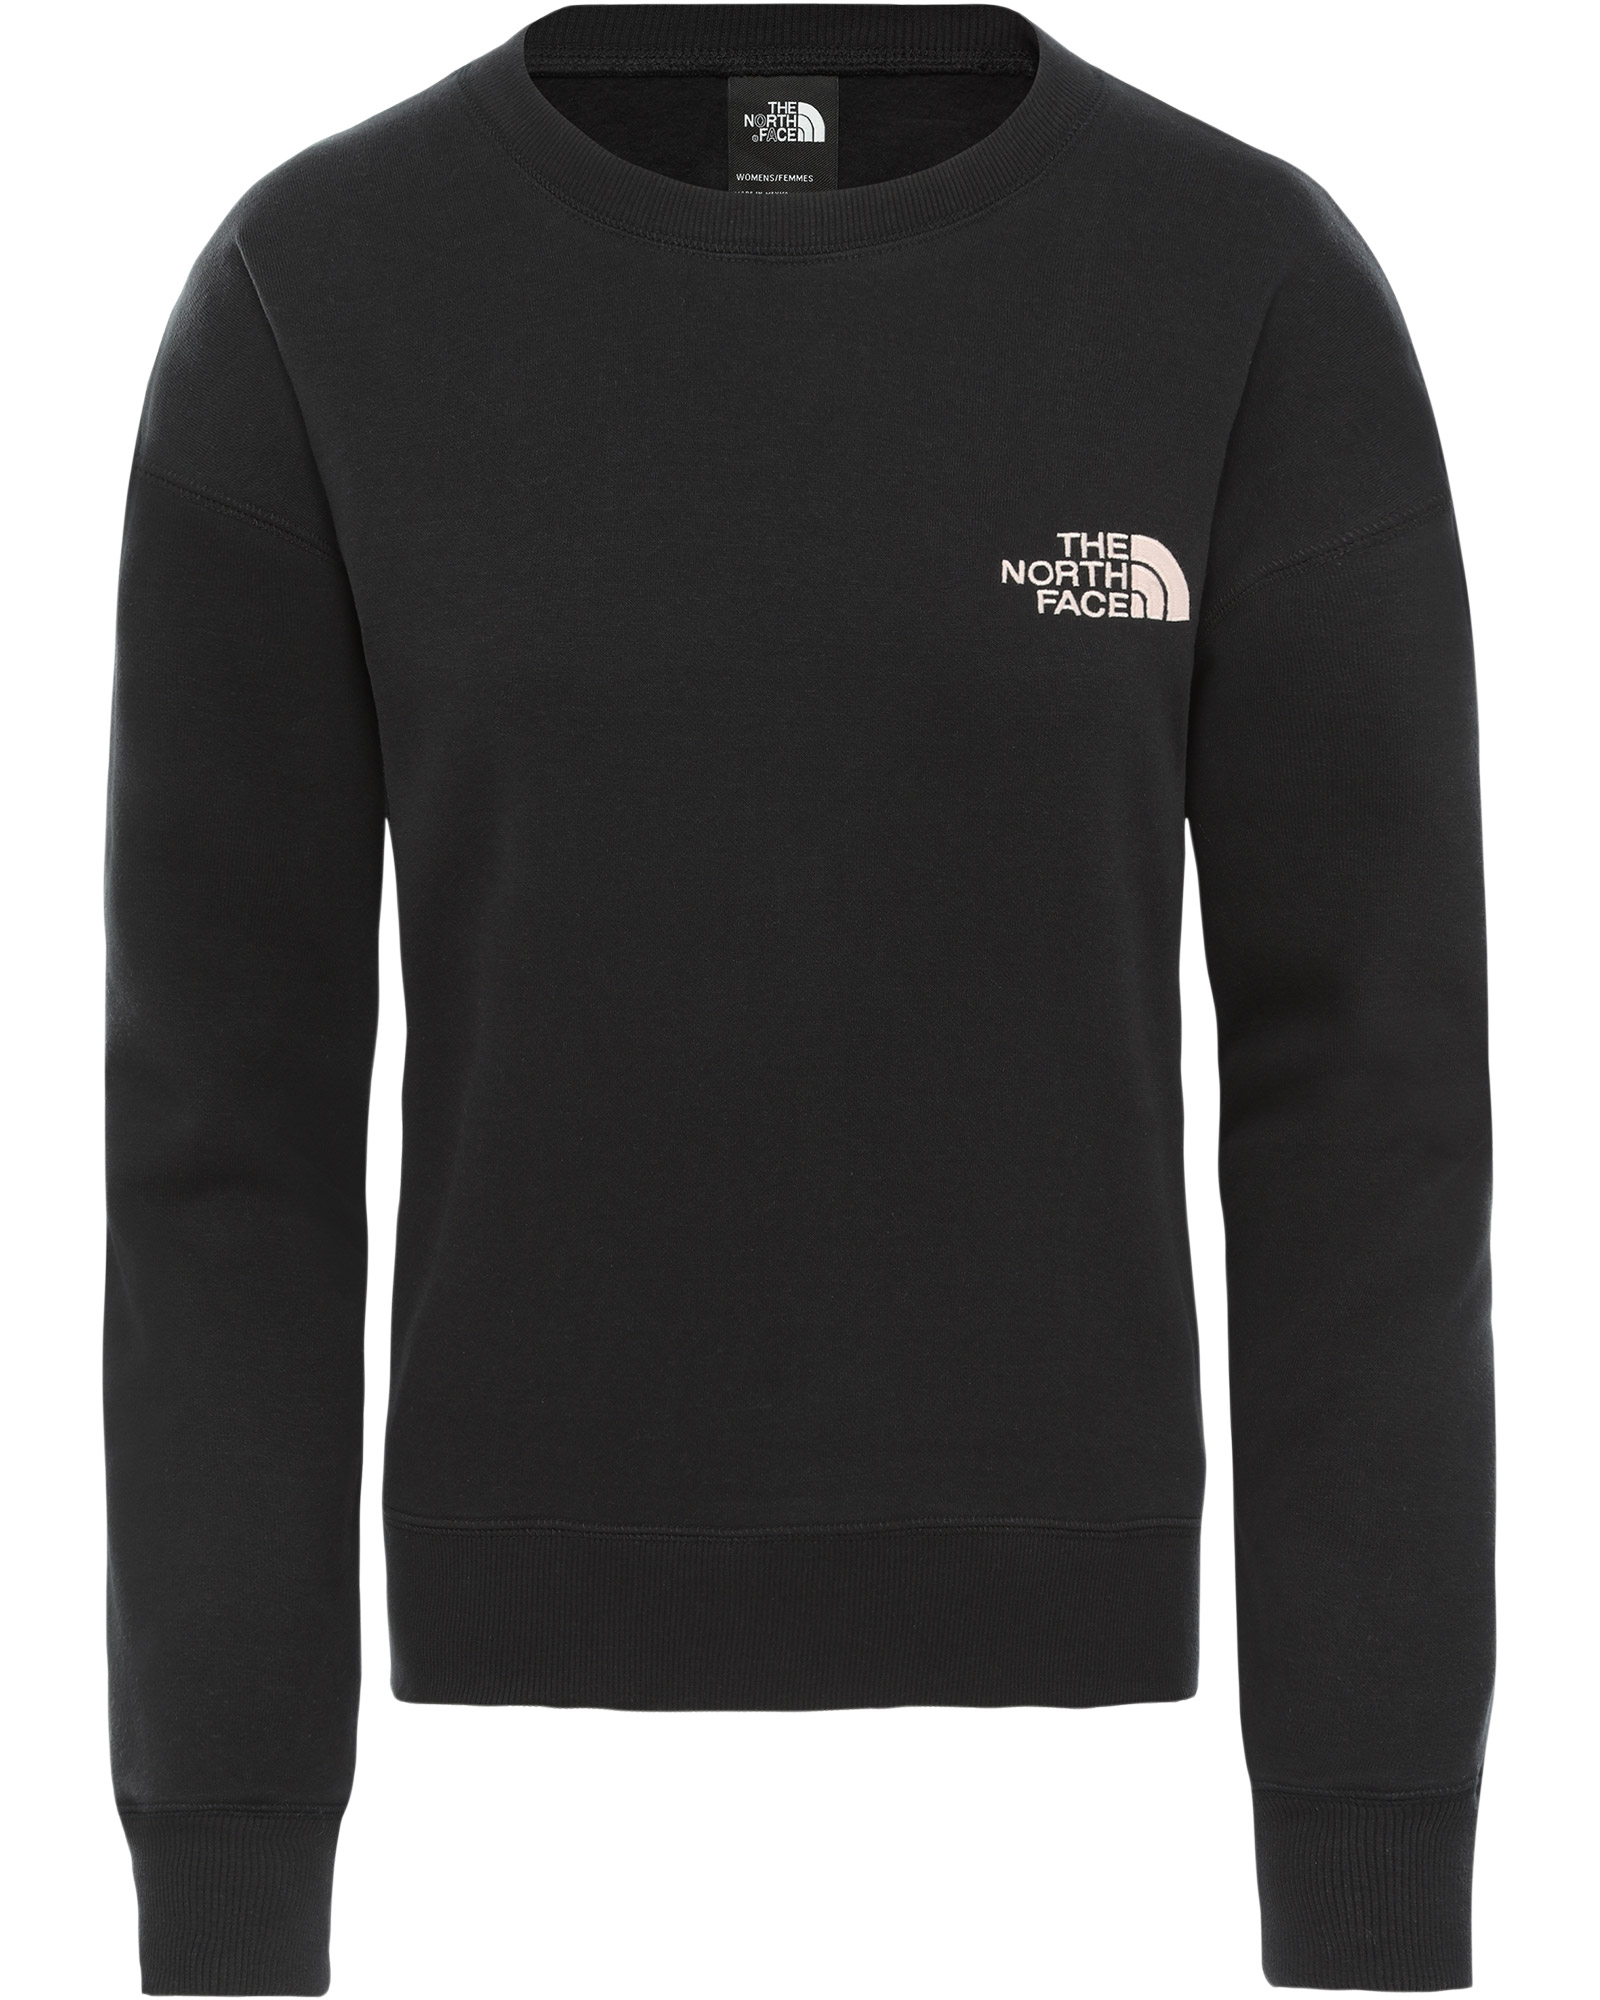 The North Face Women's Parks Slightly Cropped Crew 0